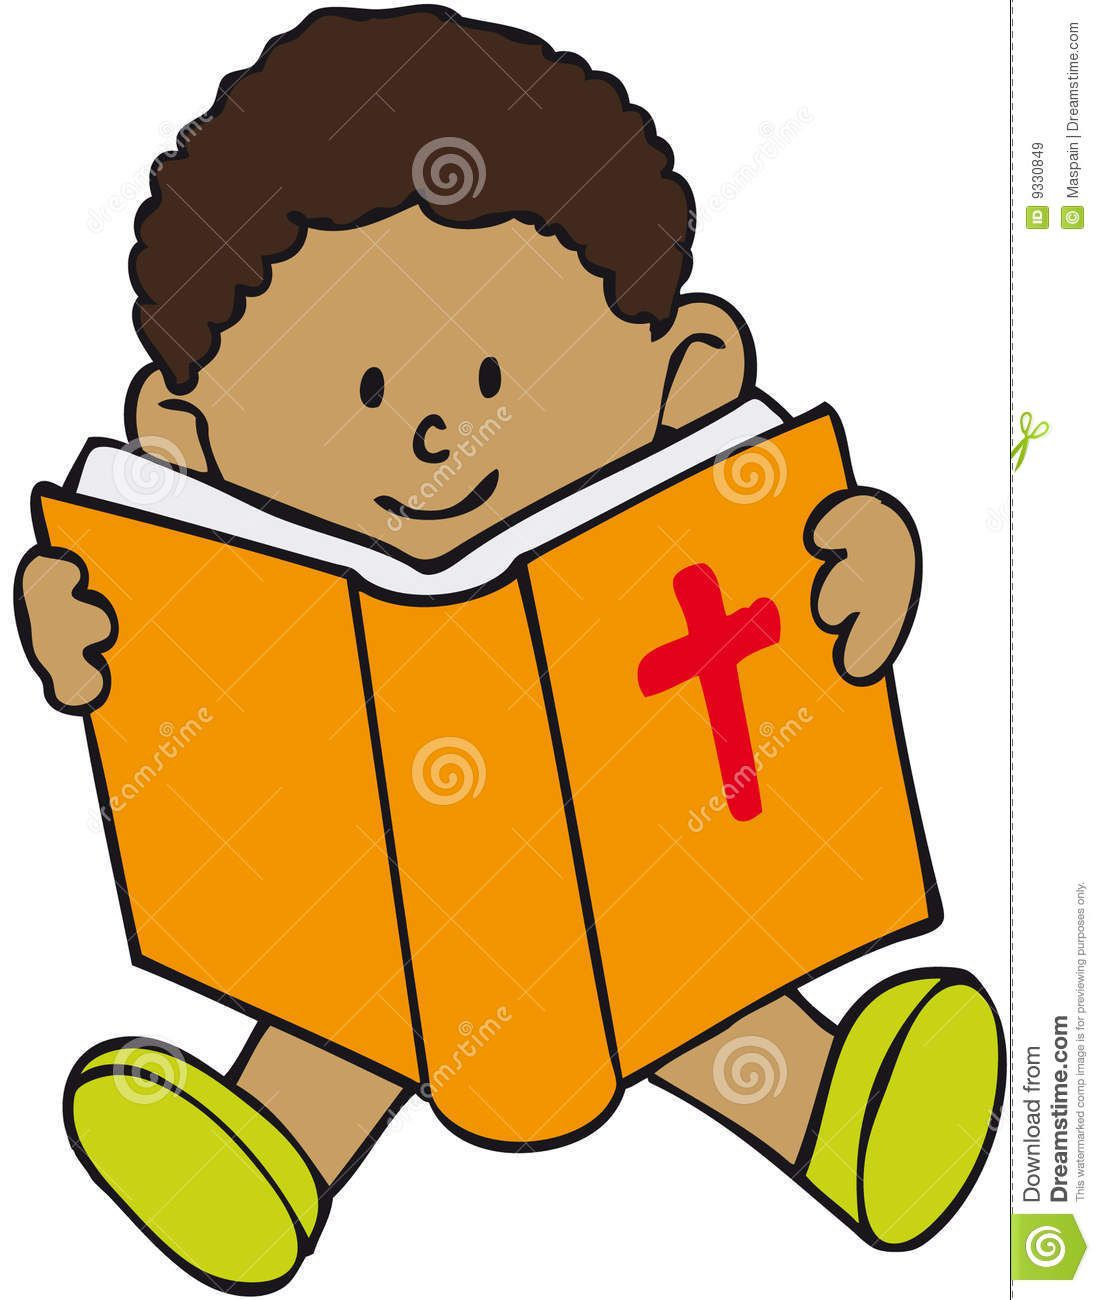 Clipart reading bible png download Reading Bible Clip Art | ... -haired child reading sat in the floor ... png download